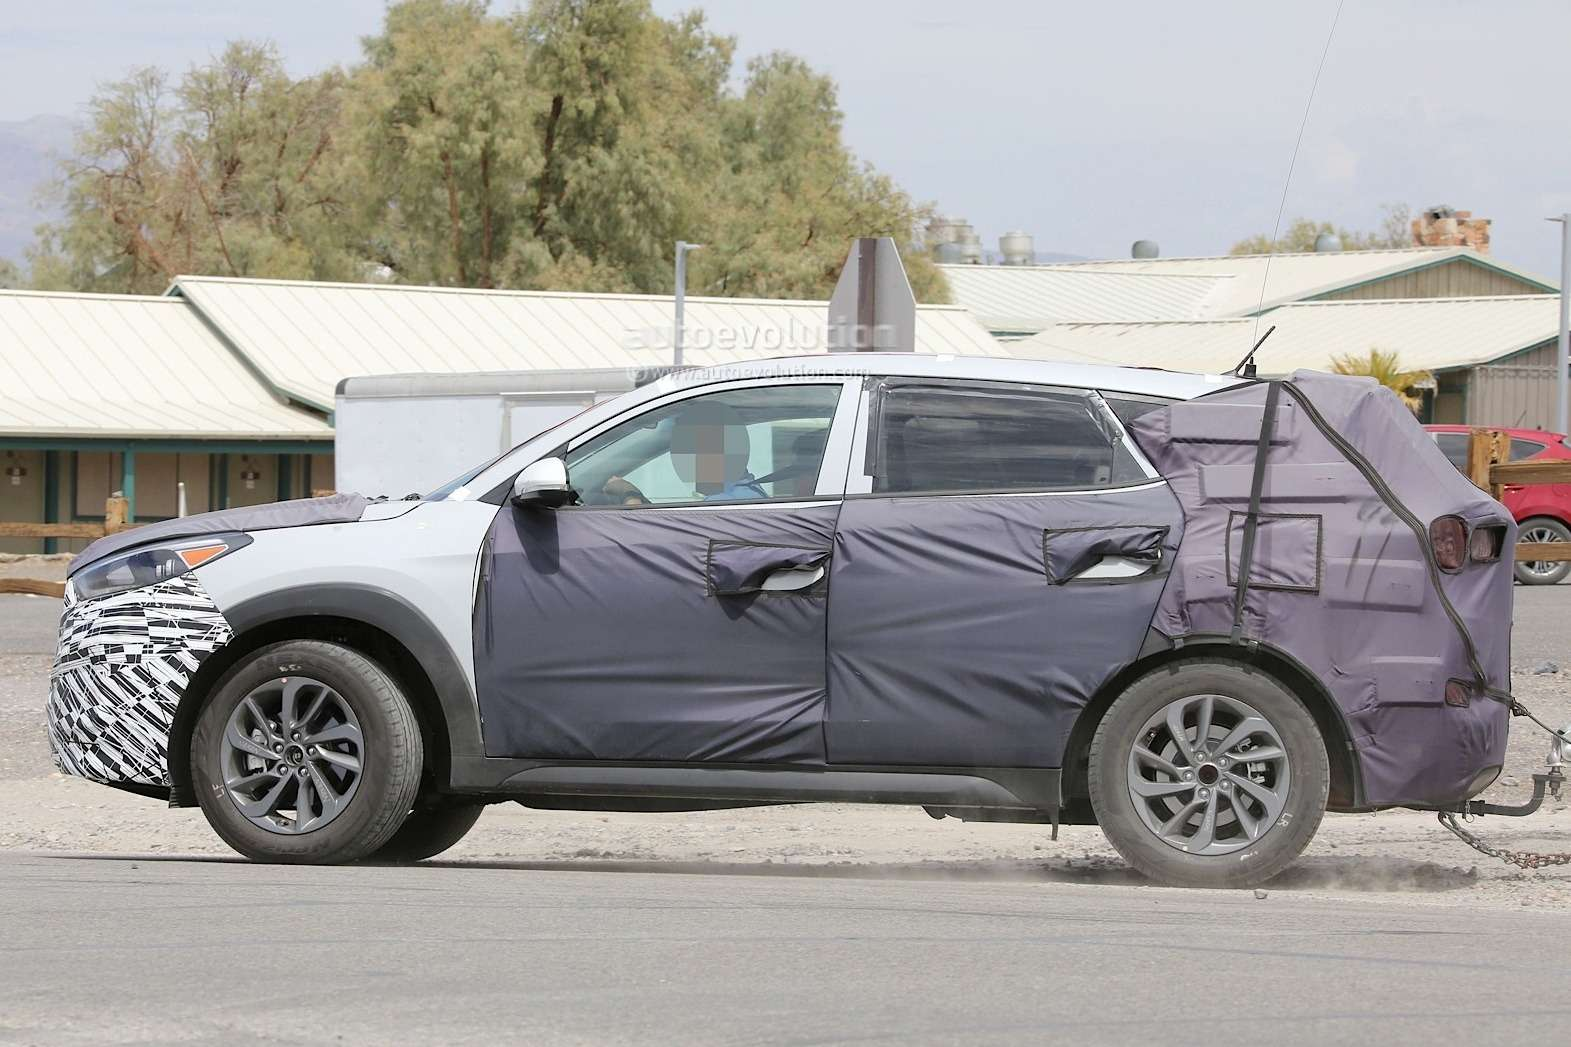 all-new-2016-hyundai-tucson-spied-with-less-camouflage-in-america-photo-gallery-1080p-8